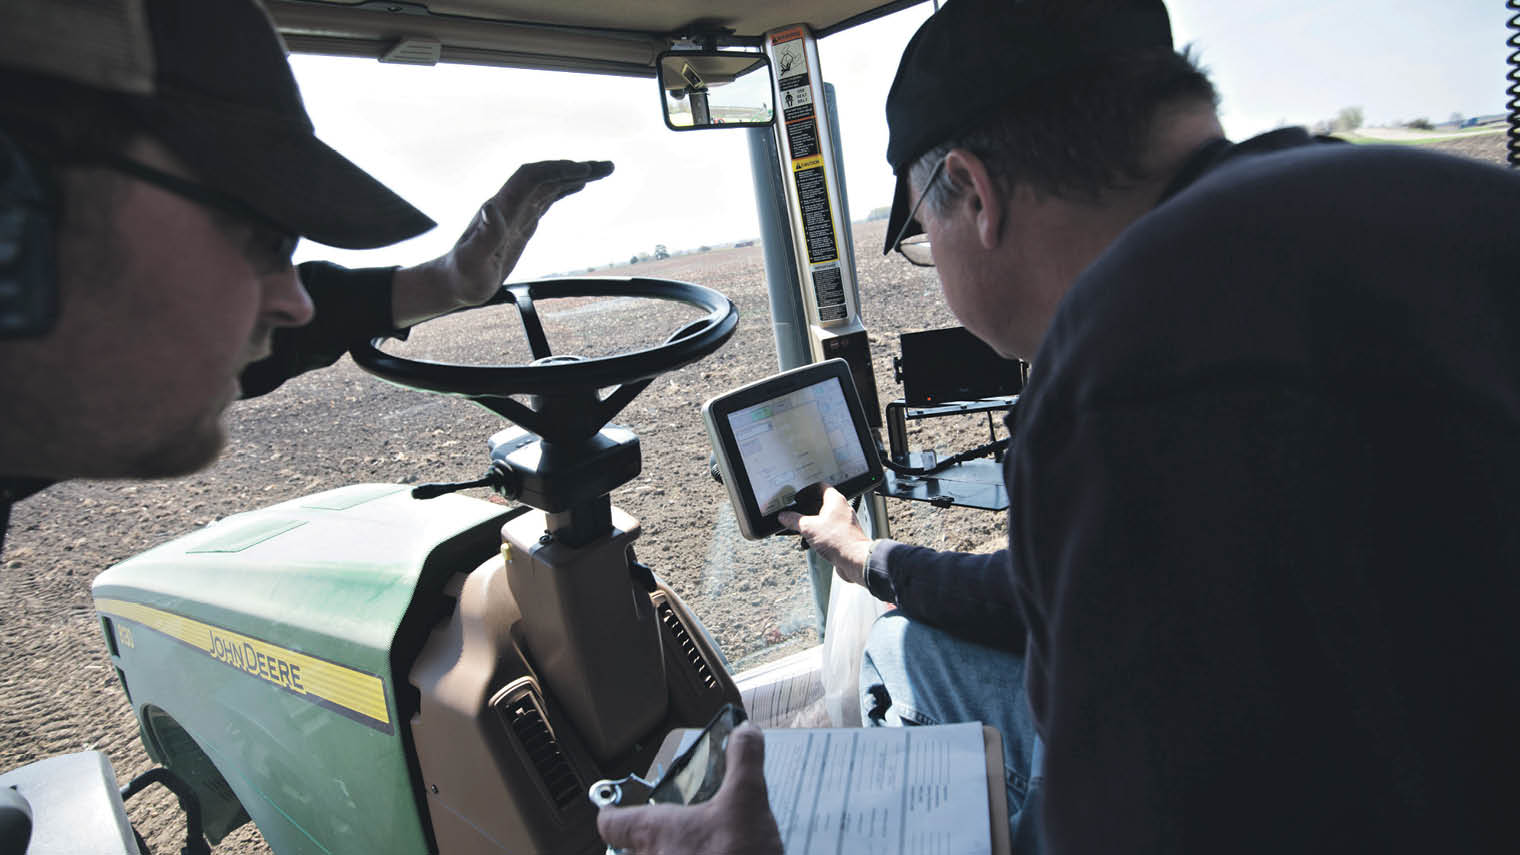 Farmers using tablet in tractor